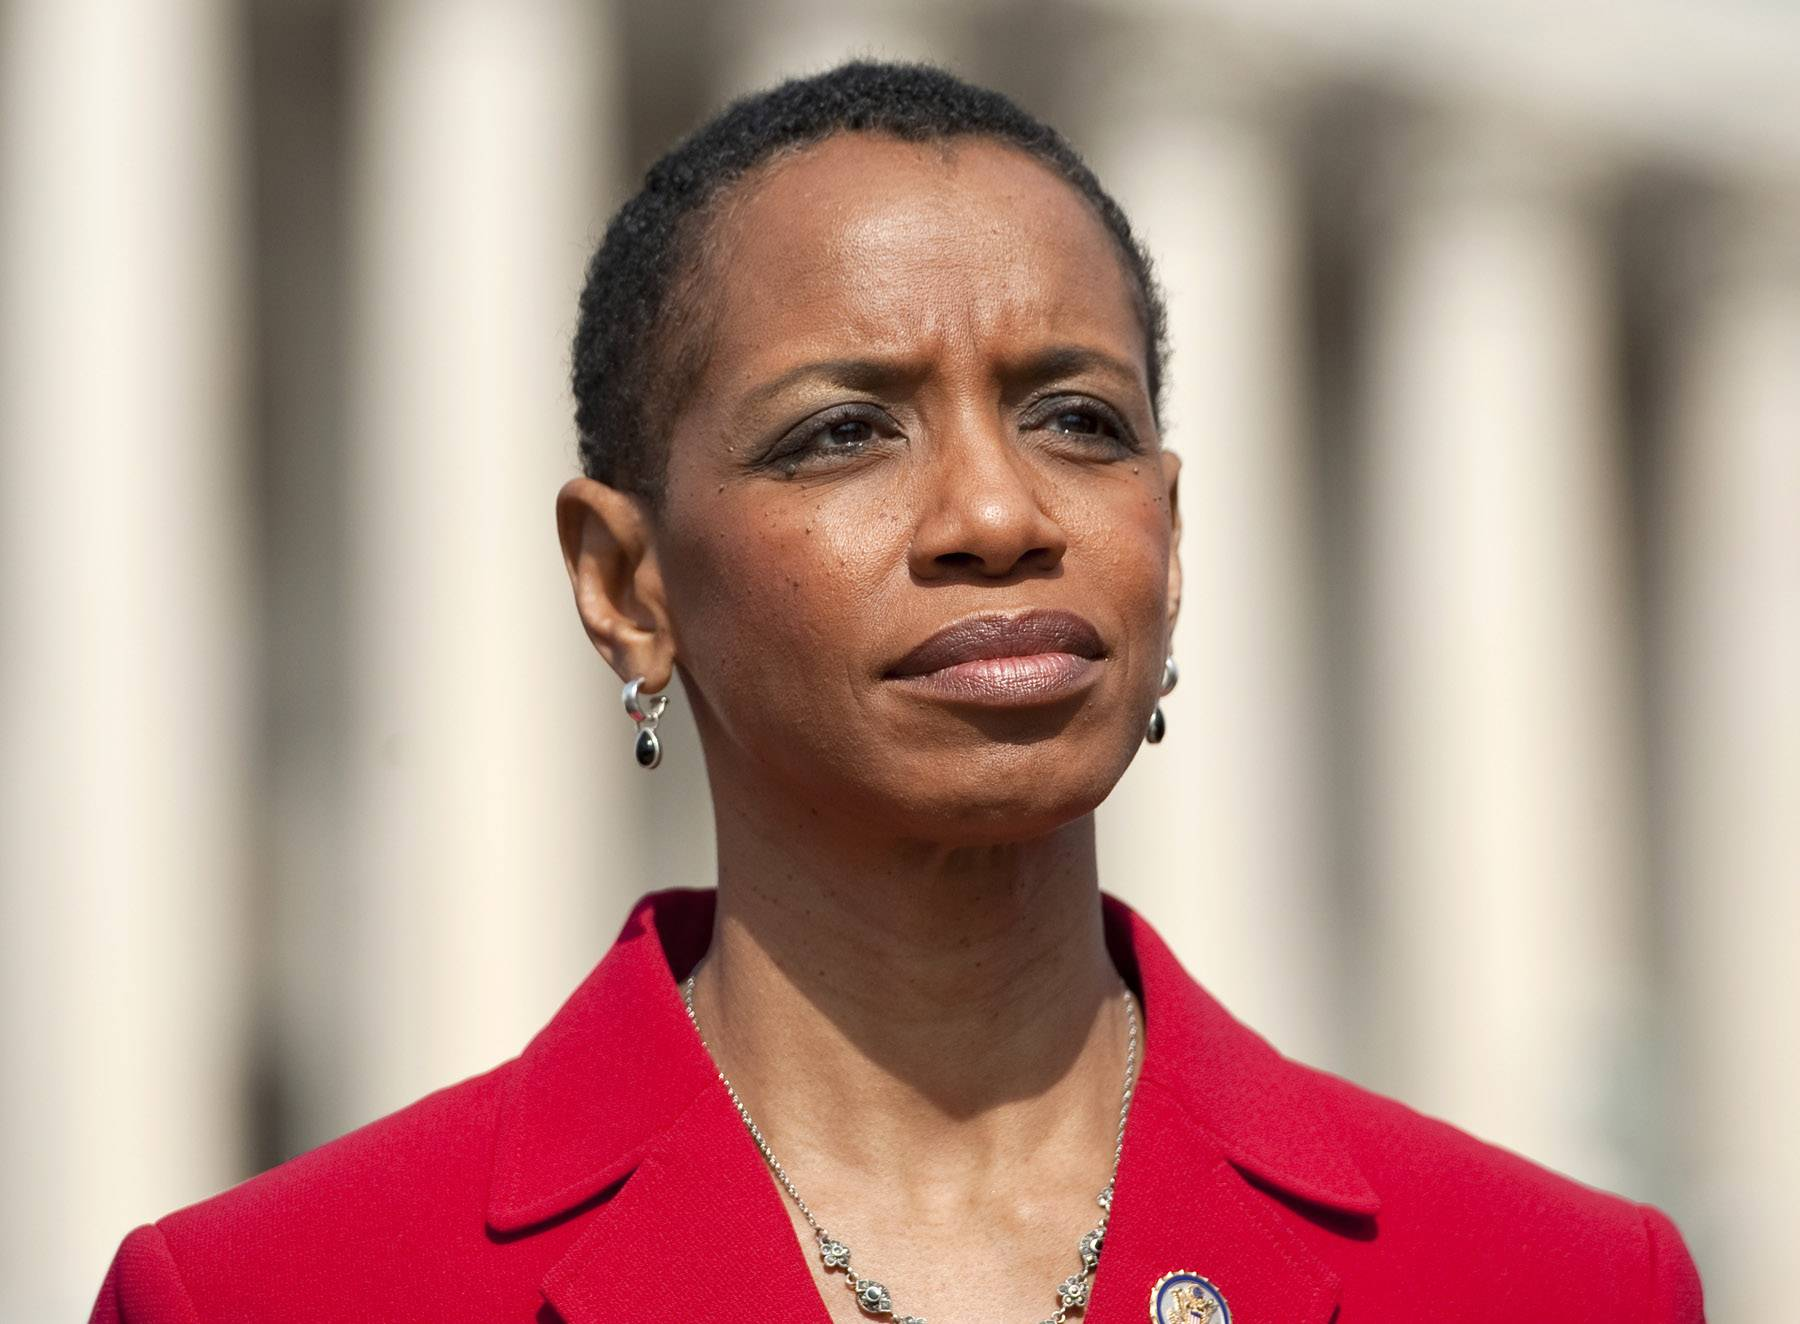 Donna Edwards - Say what you will about Rep. Donna Edwards ? she probably won't care. The Maryland lawmaker won her first bid for Congress by ousting a Black incumbent in 2008 and in 2012 sided against her state's Democratic establishment on redistricting. As a member of the House Ethics Committee, this rising star knows not everybody will share her viewpoint, and she's OK with that.  (Photo: Bill Clark/Roll Call)